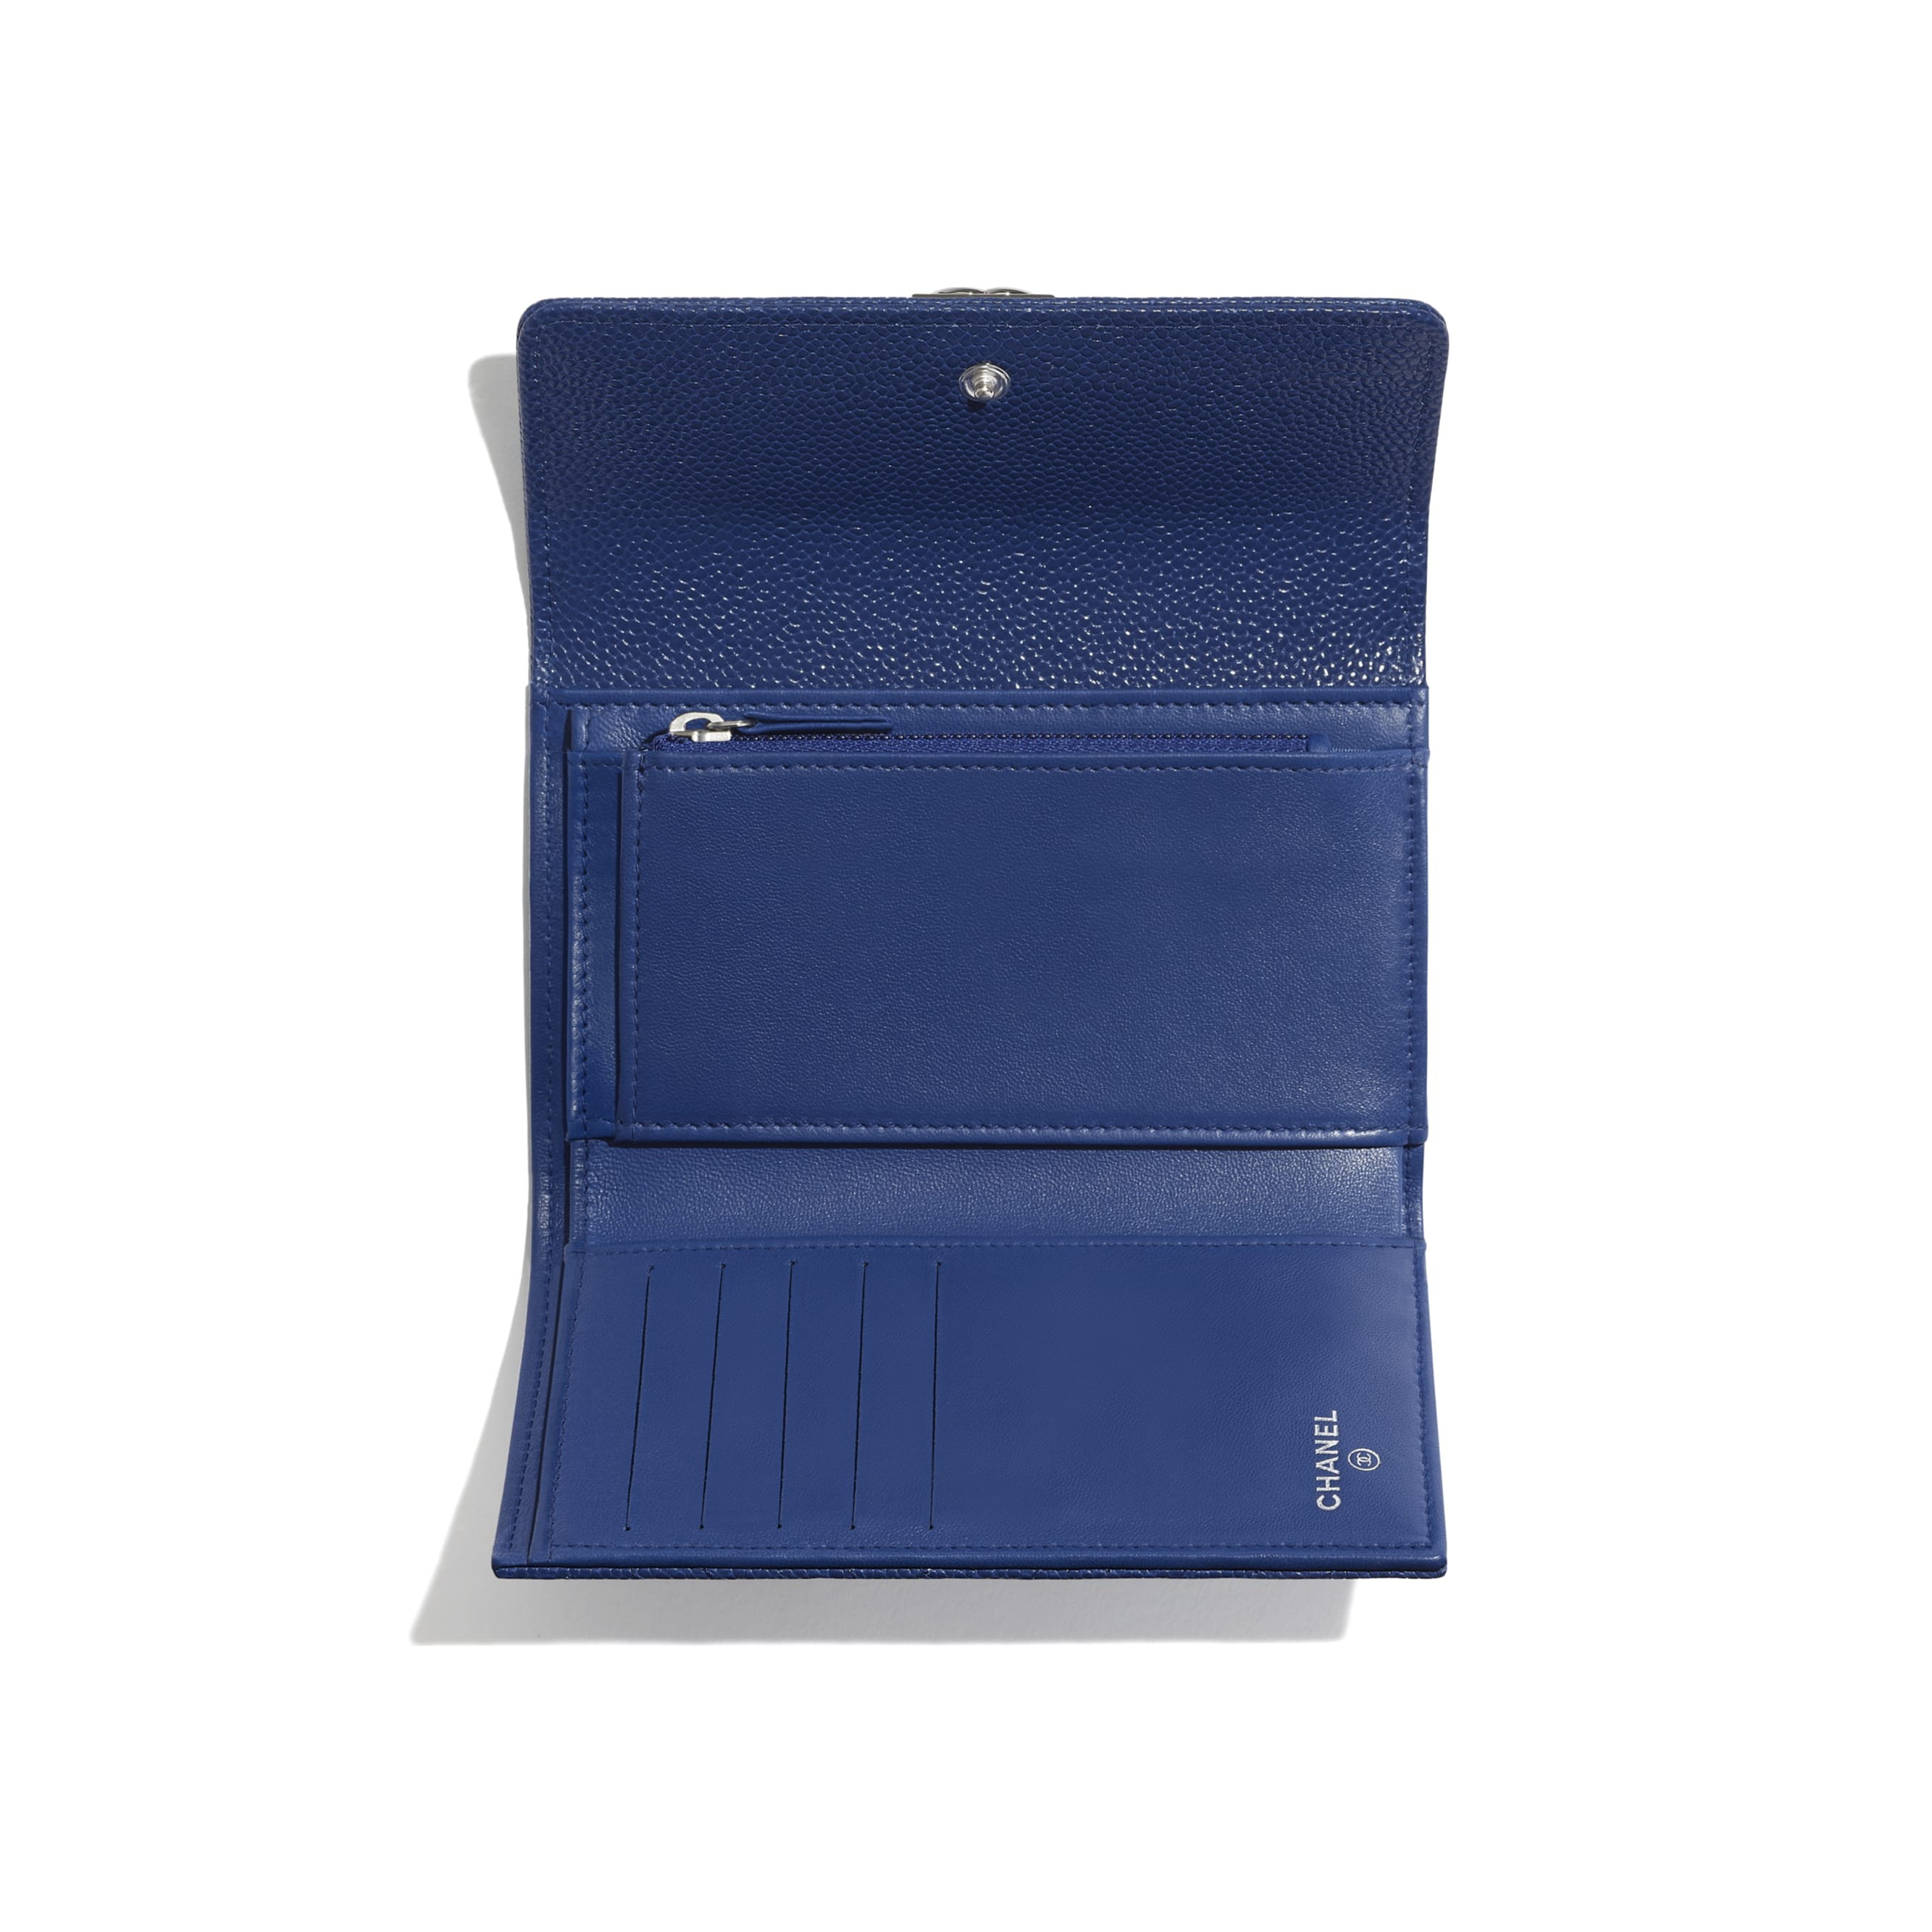 BOY CHANEL Flap Wallet - Dark Blue - Shiny Grained Calfskin & Silver-Tone Metal - CHANEL - Other view - see standard sized version